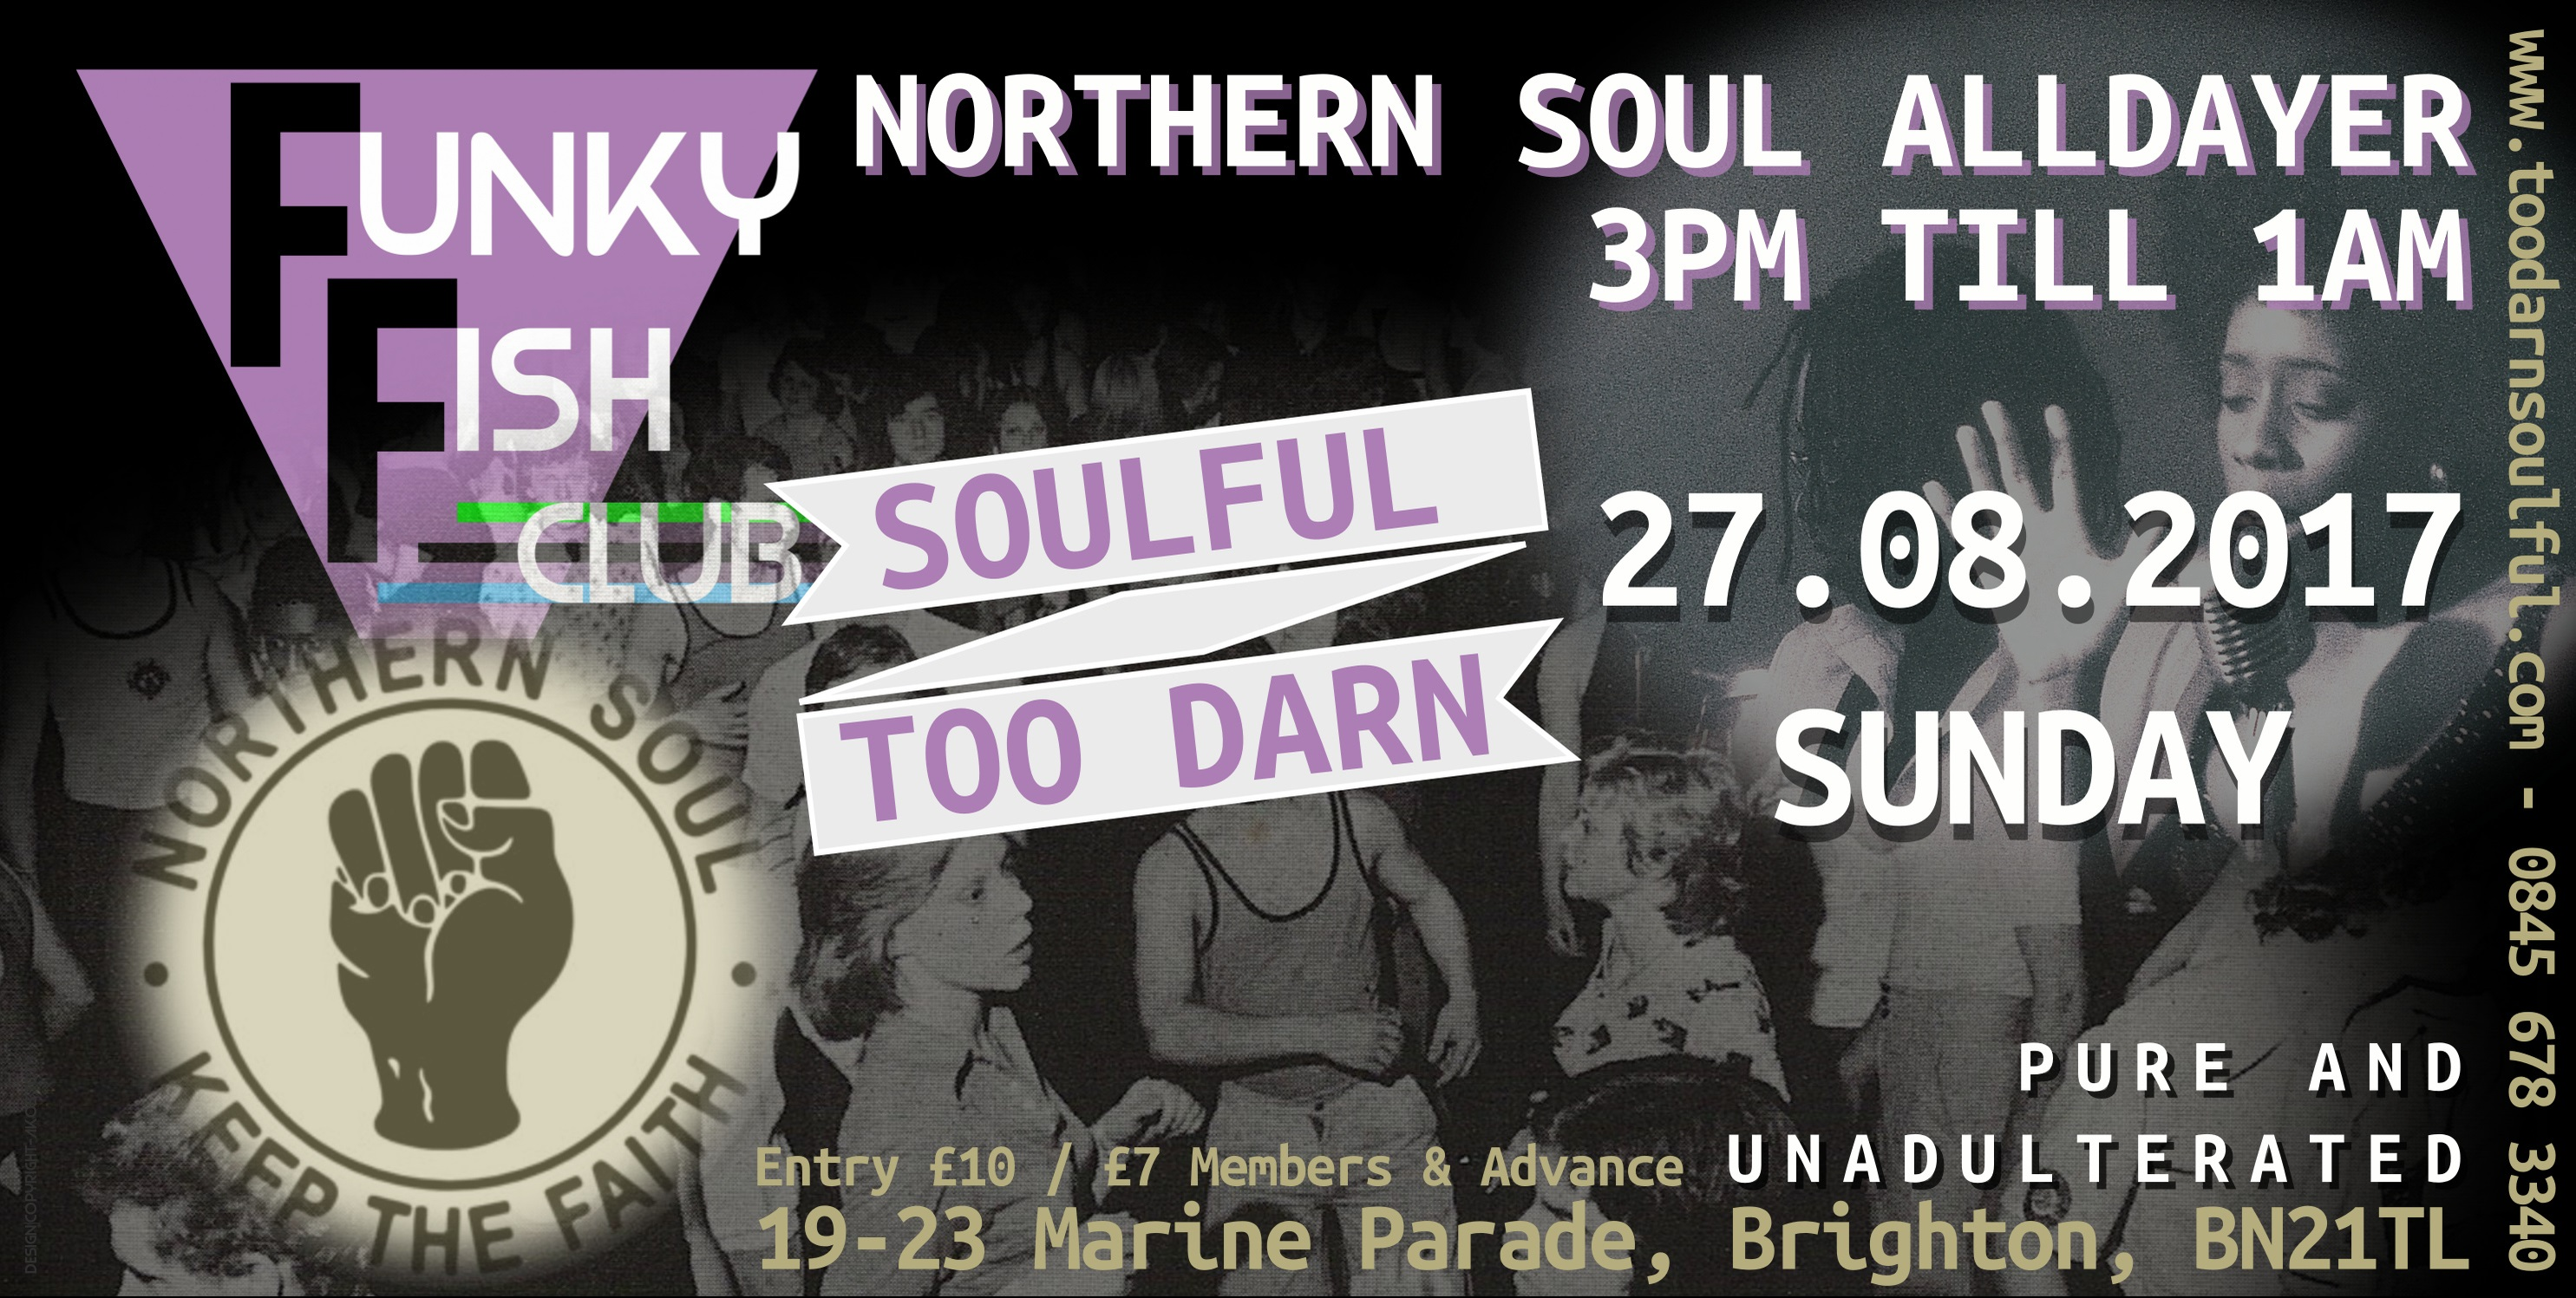 SUNDAY 27th AUGUST - NORTHERN SOUL ALL DAYER